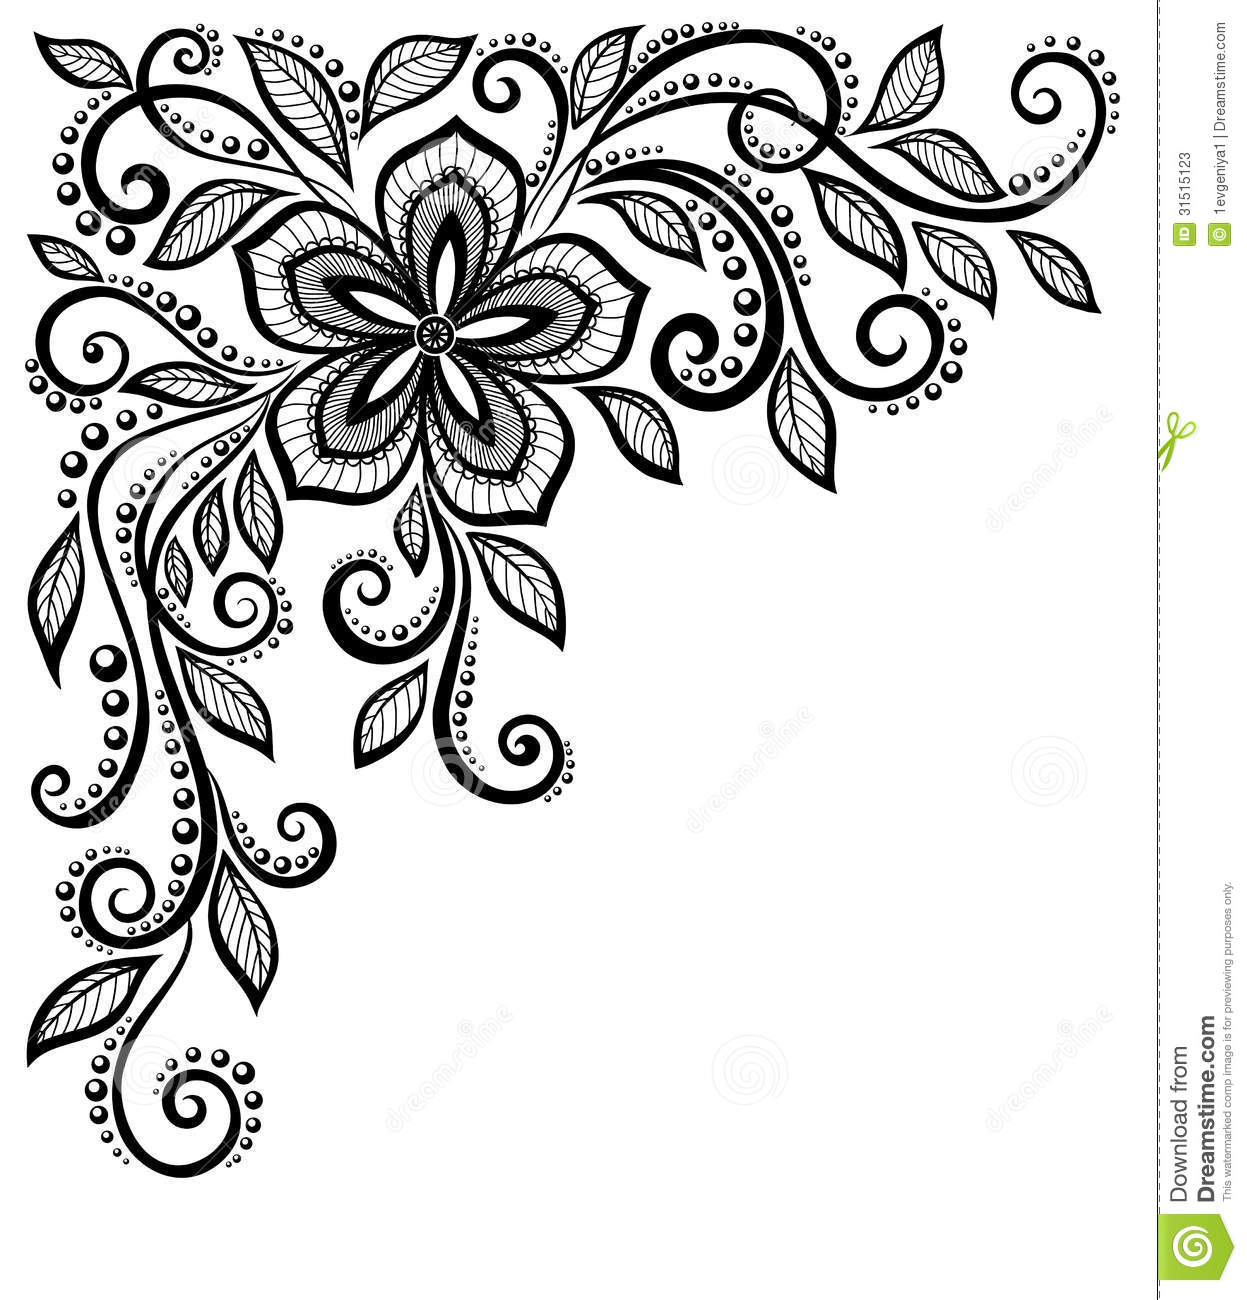 Black and white clipart lace picture freeuse Lace Clipart | Free download best Lace Clipart on ClipArtMag.com picture freeuse